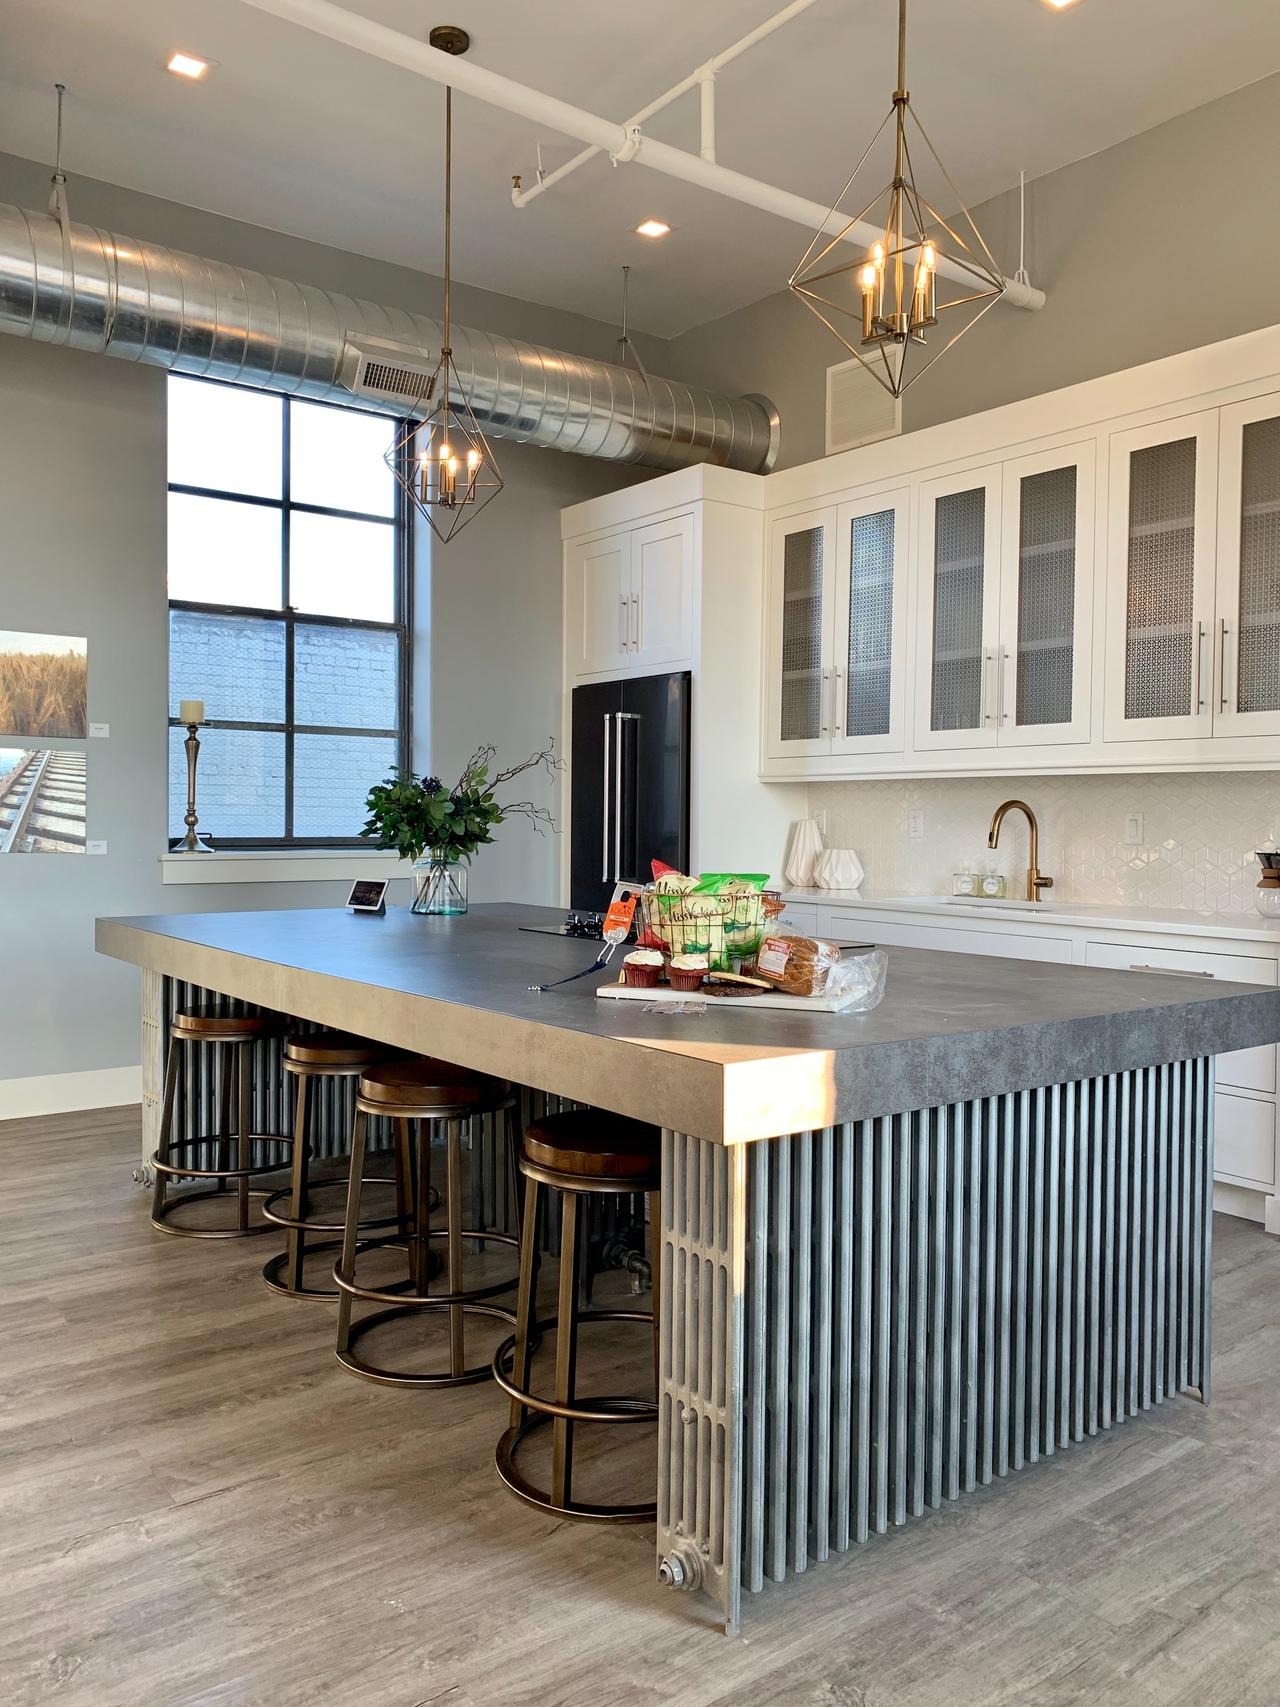 kitchen renovation completed by a Kansas City general contractor